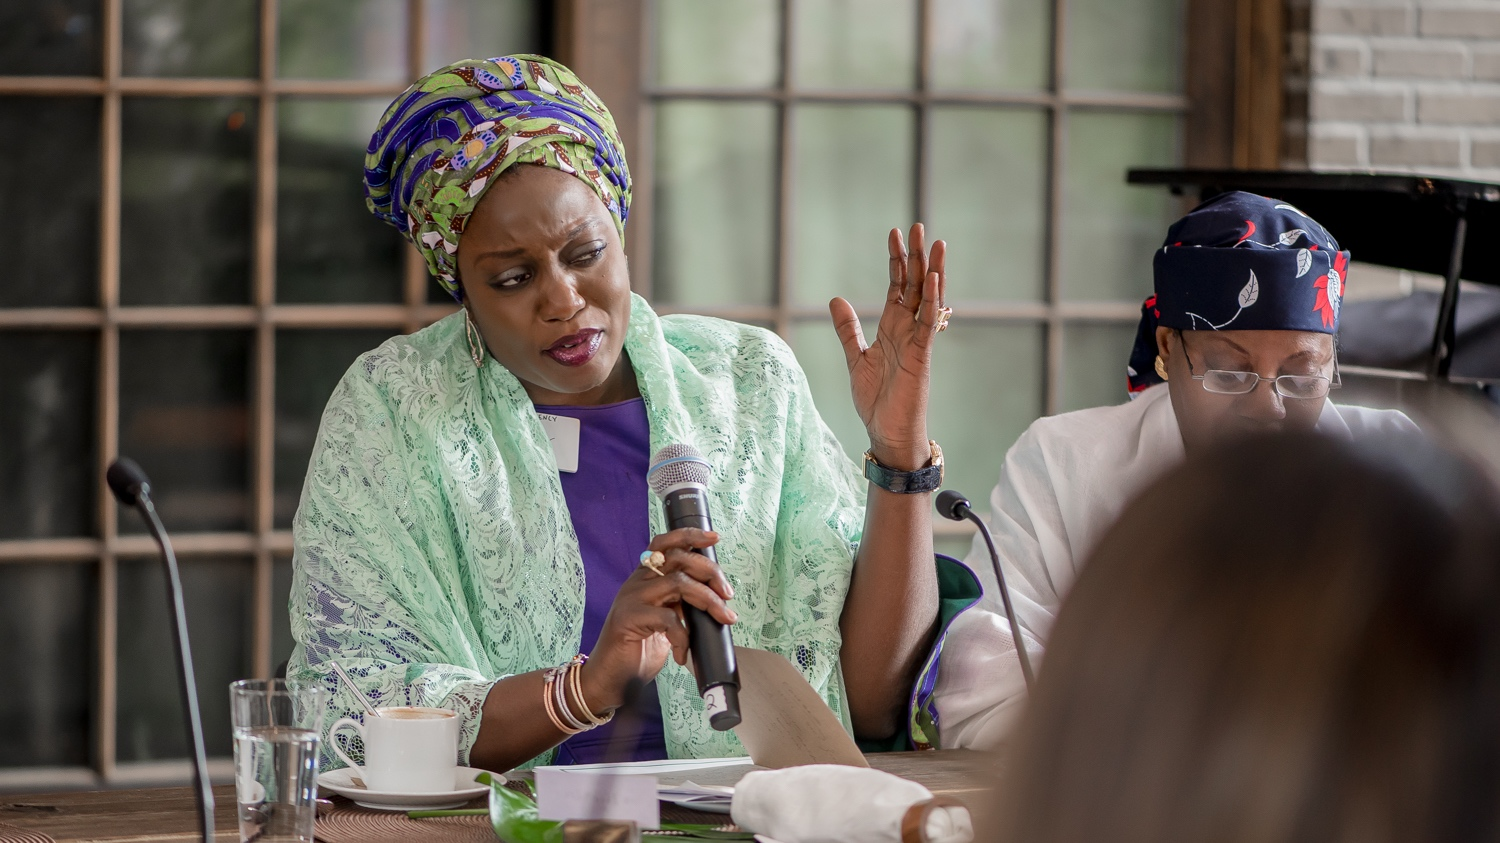 Photo of Mrs. Maryam Mairo Tambuwal, First Lady Sokoto State, Nigeria, during 2017 GFLA Annual Meeting.